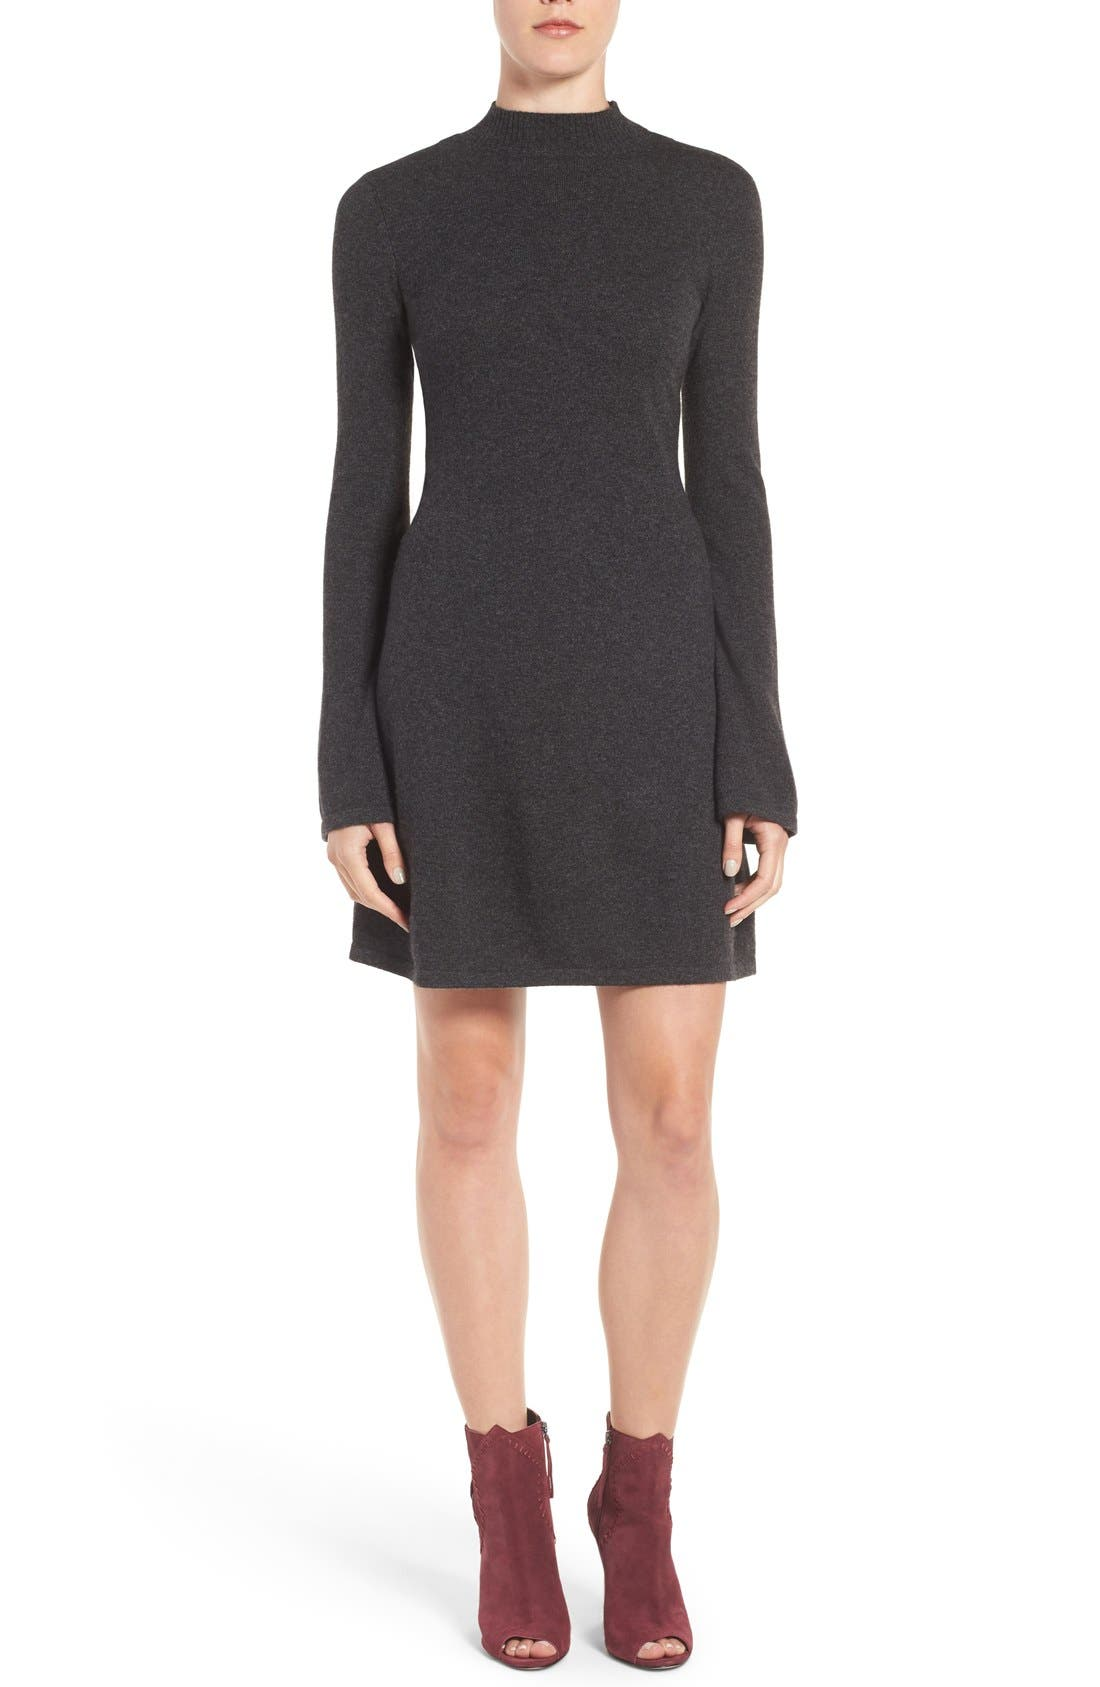 Alternate Image 1 Selected - Rebecca Minkoff Tabitha Cashmere Shift Dress